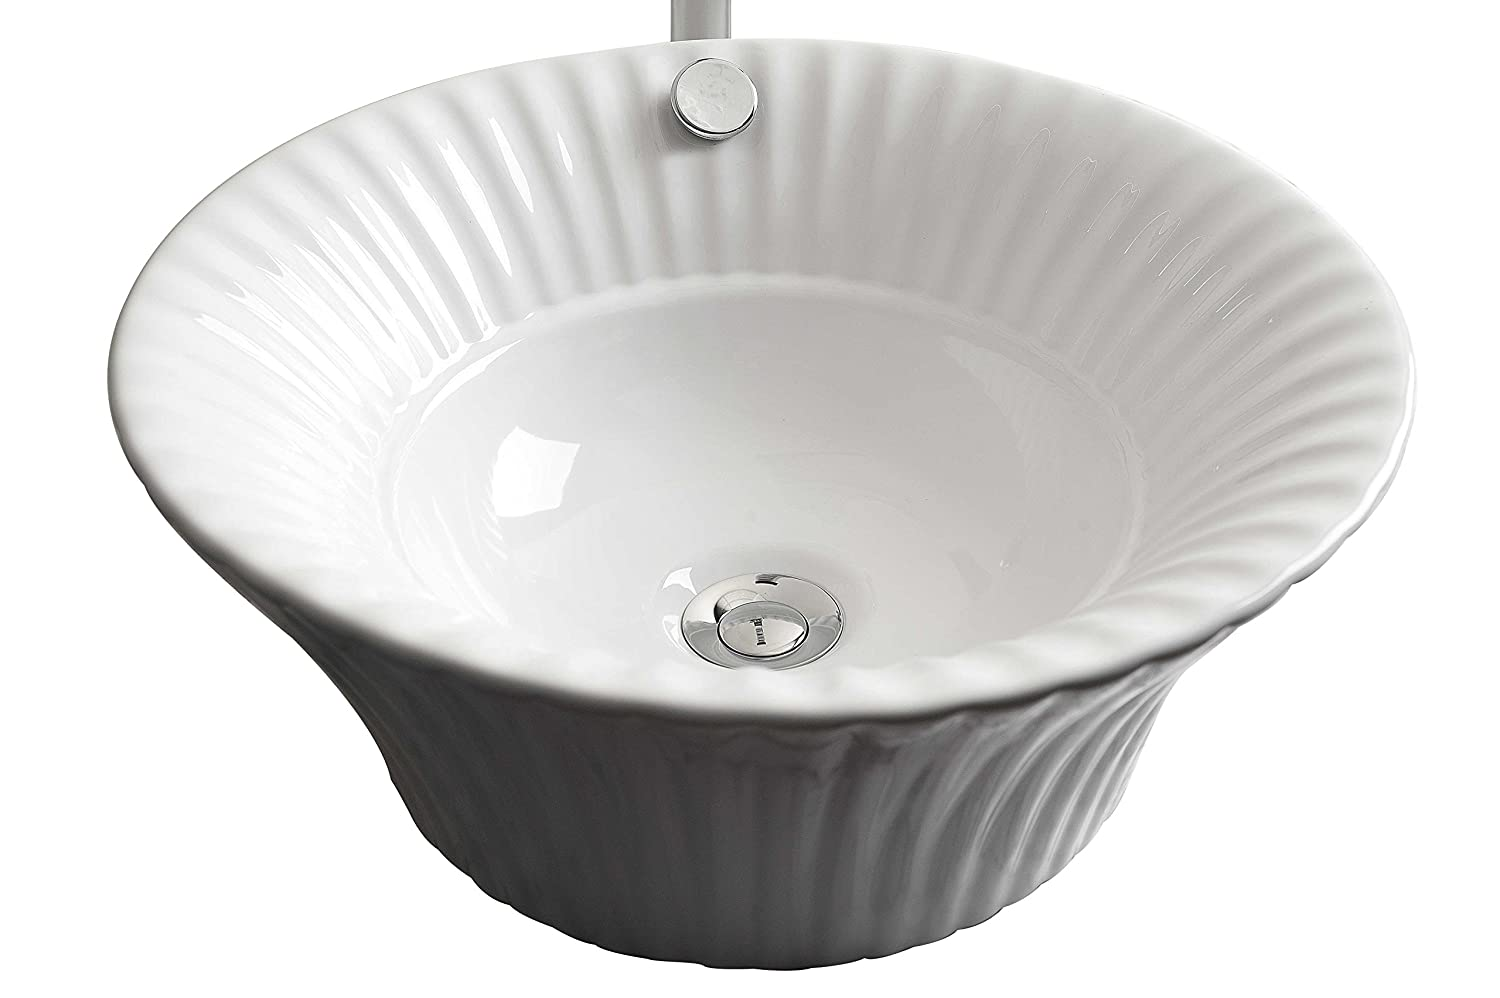 American Imaginations 17-in. W x 17-in. D Above Counter Round Vessel In White Color For Deck Mount Faucet, AI-12-265